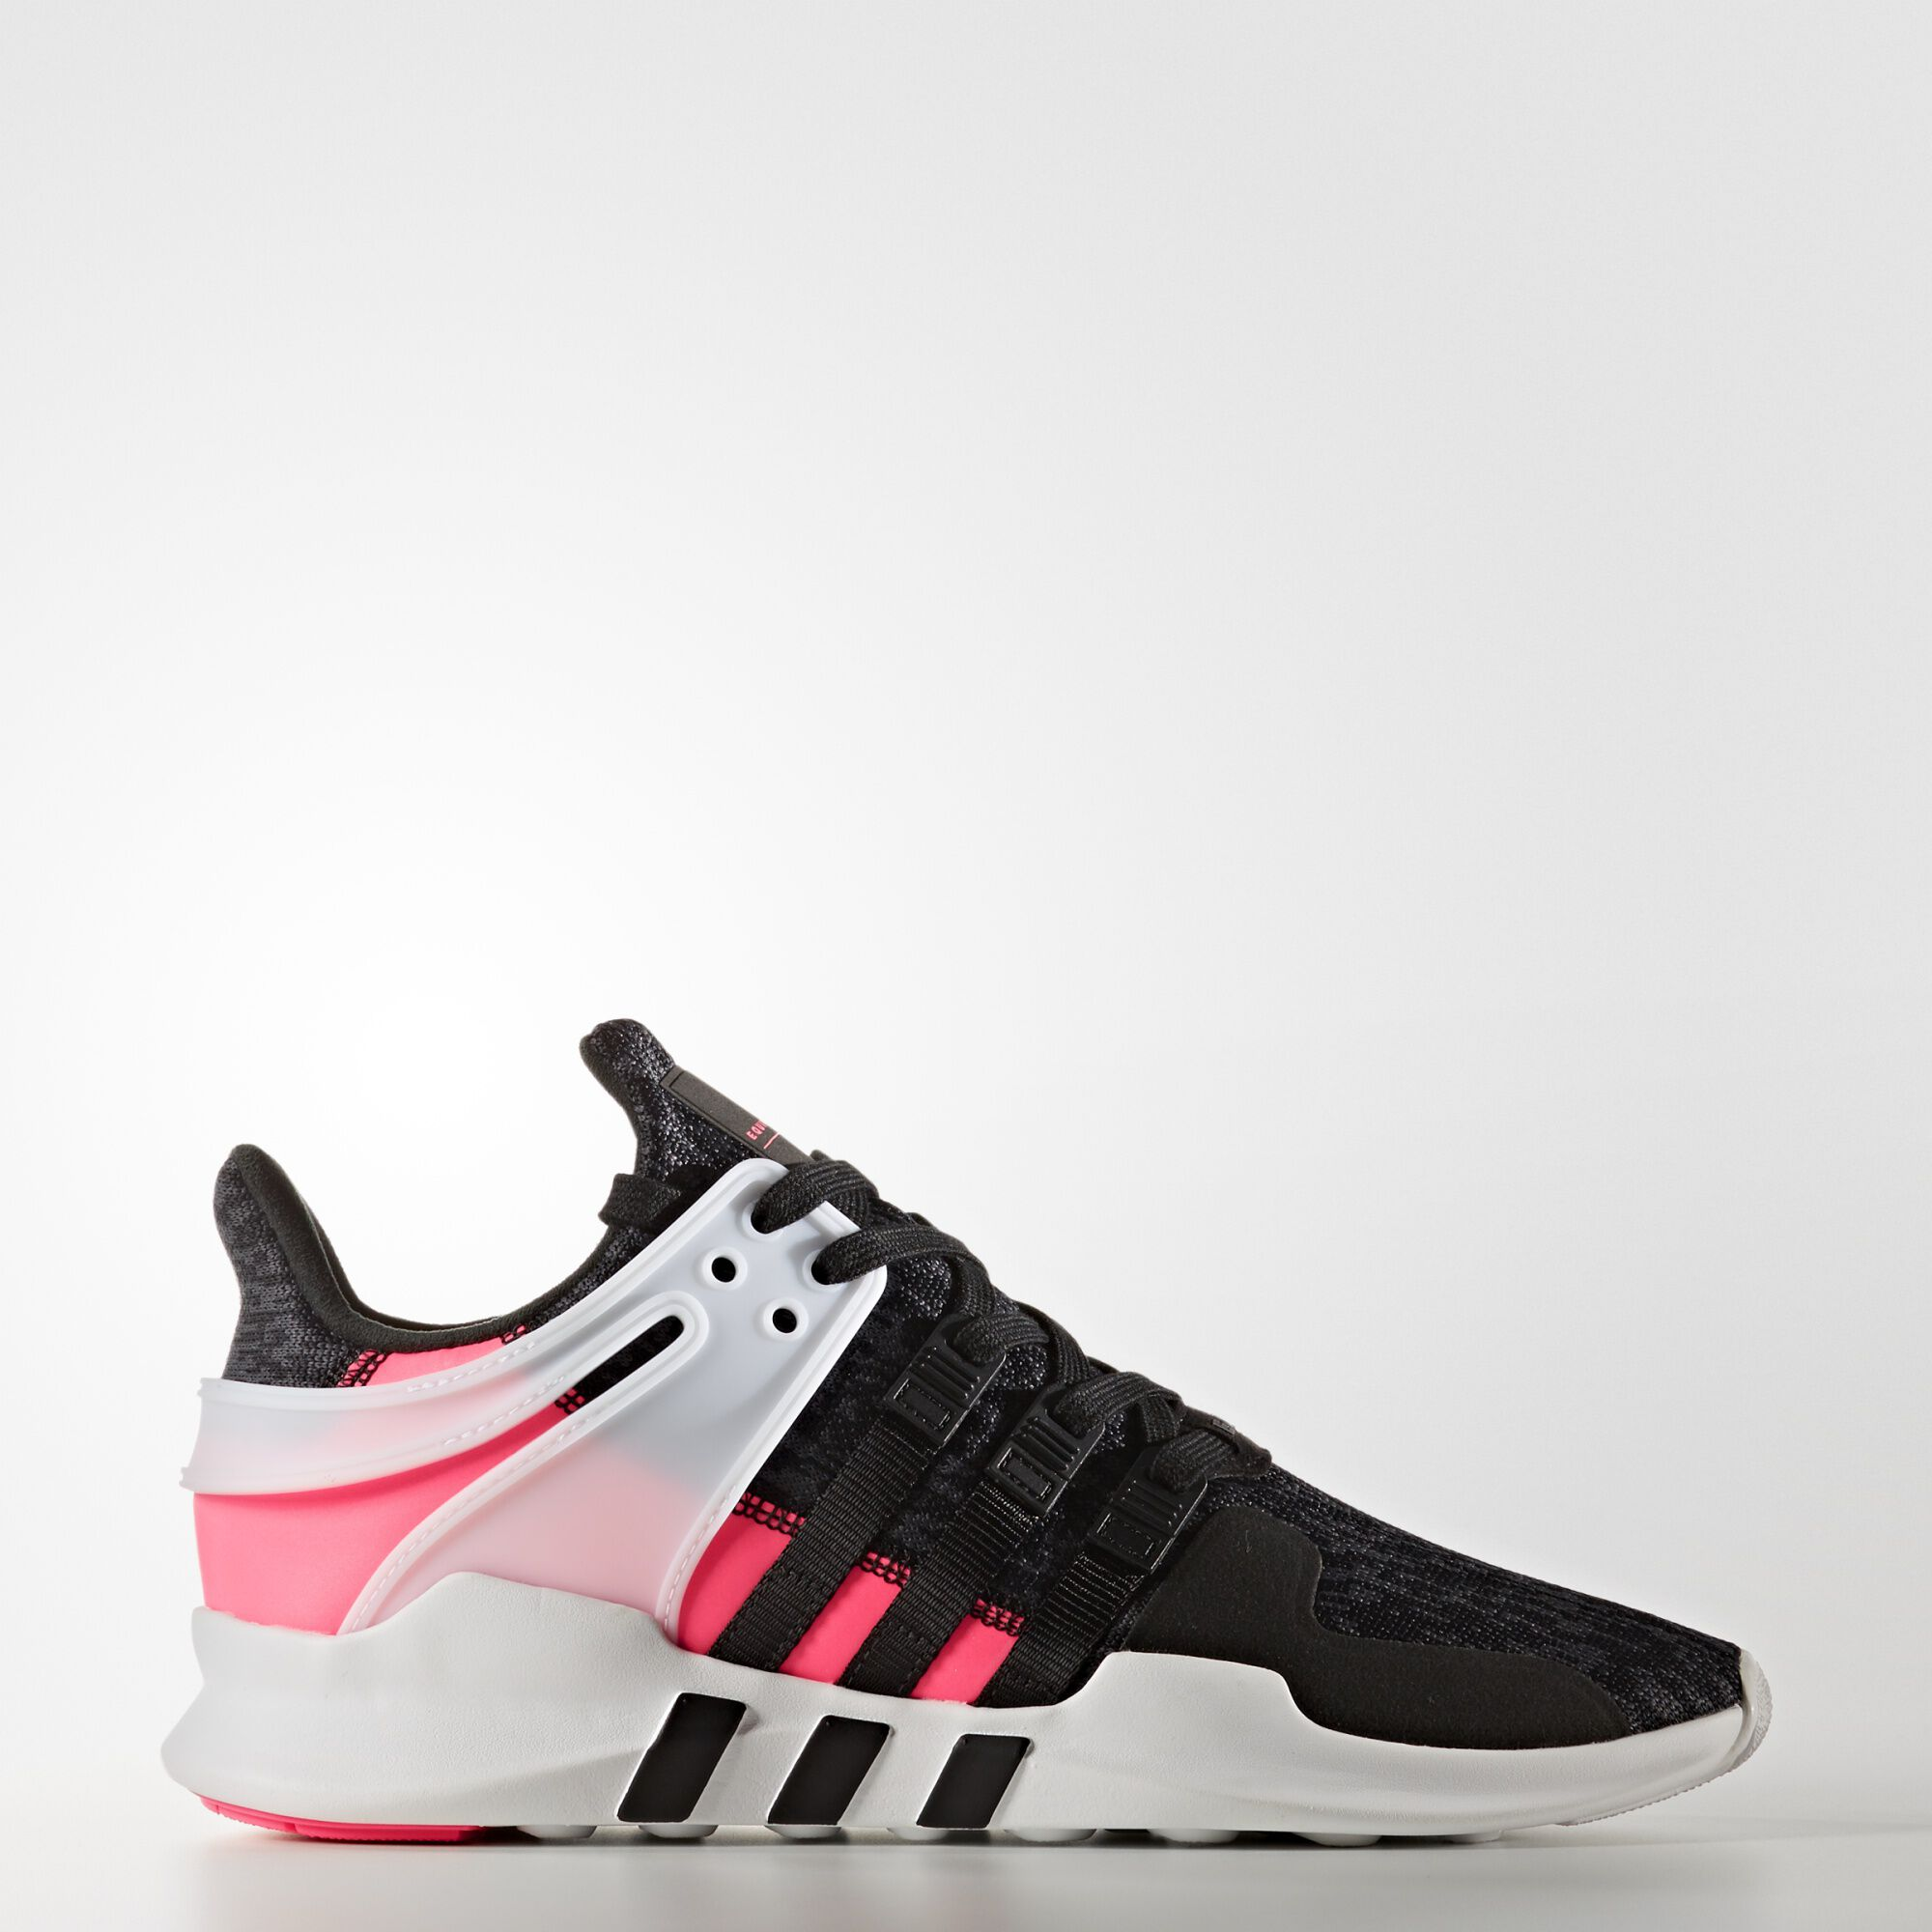 Where To Buy adidas EQT Support 93/17 White Broodjes & Bier